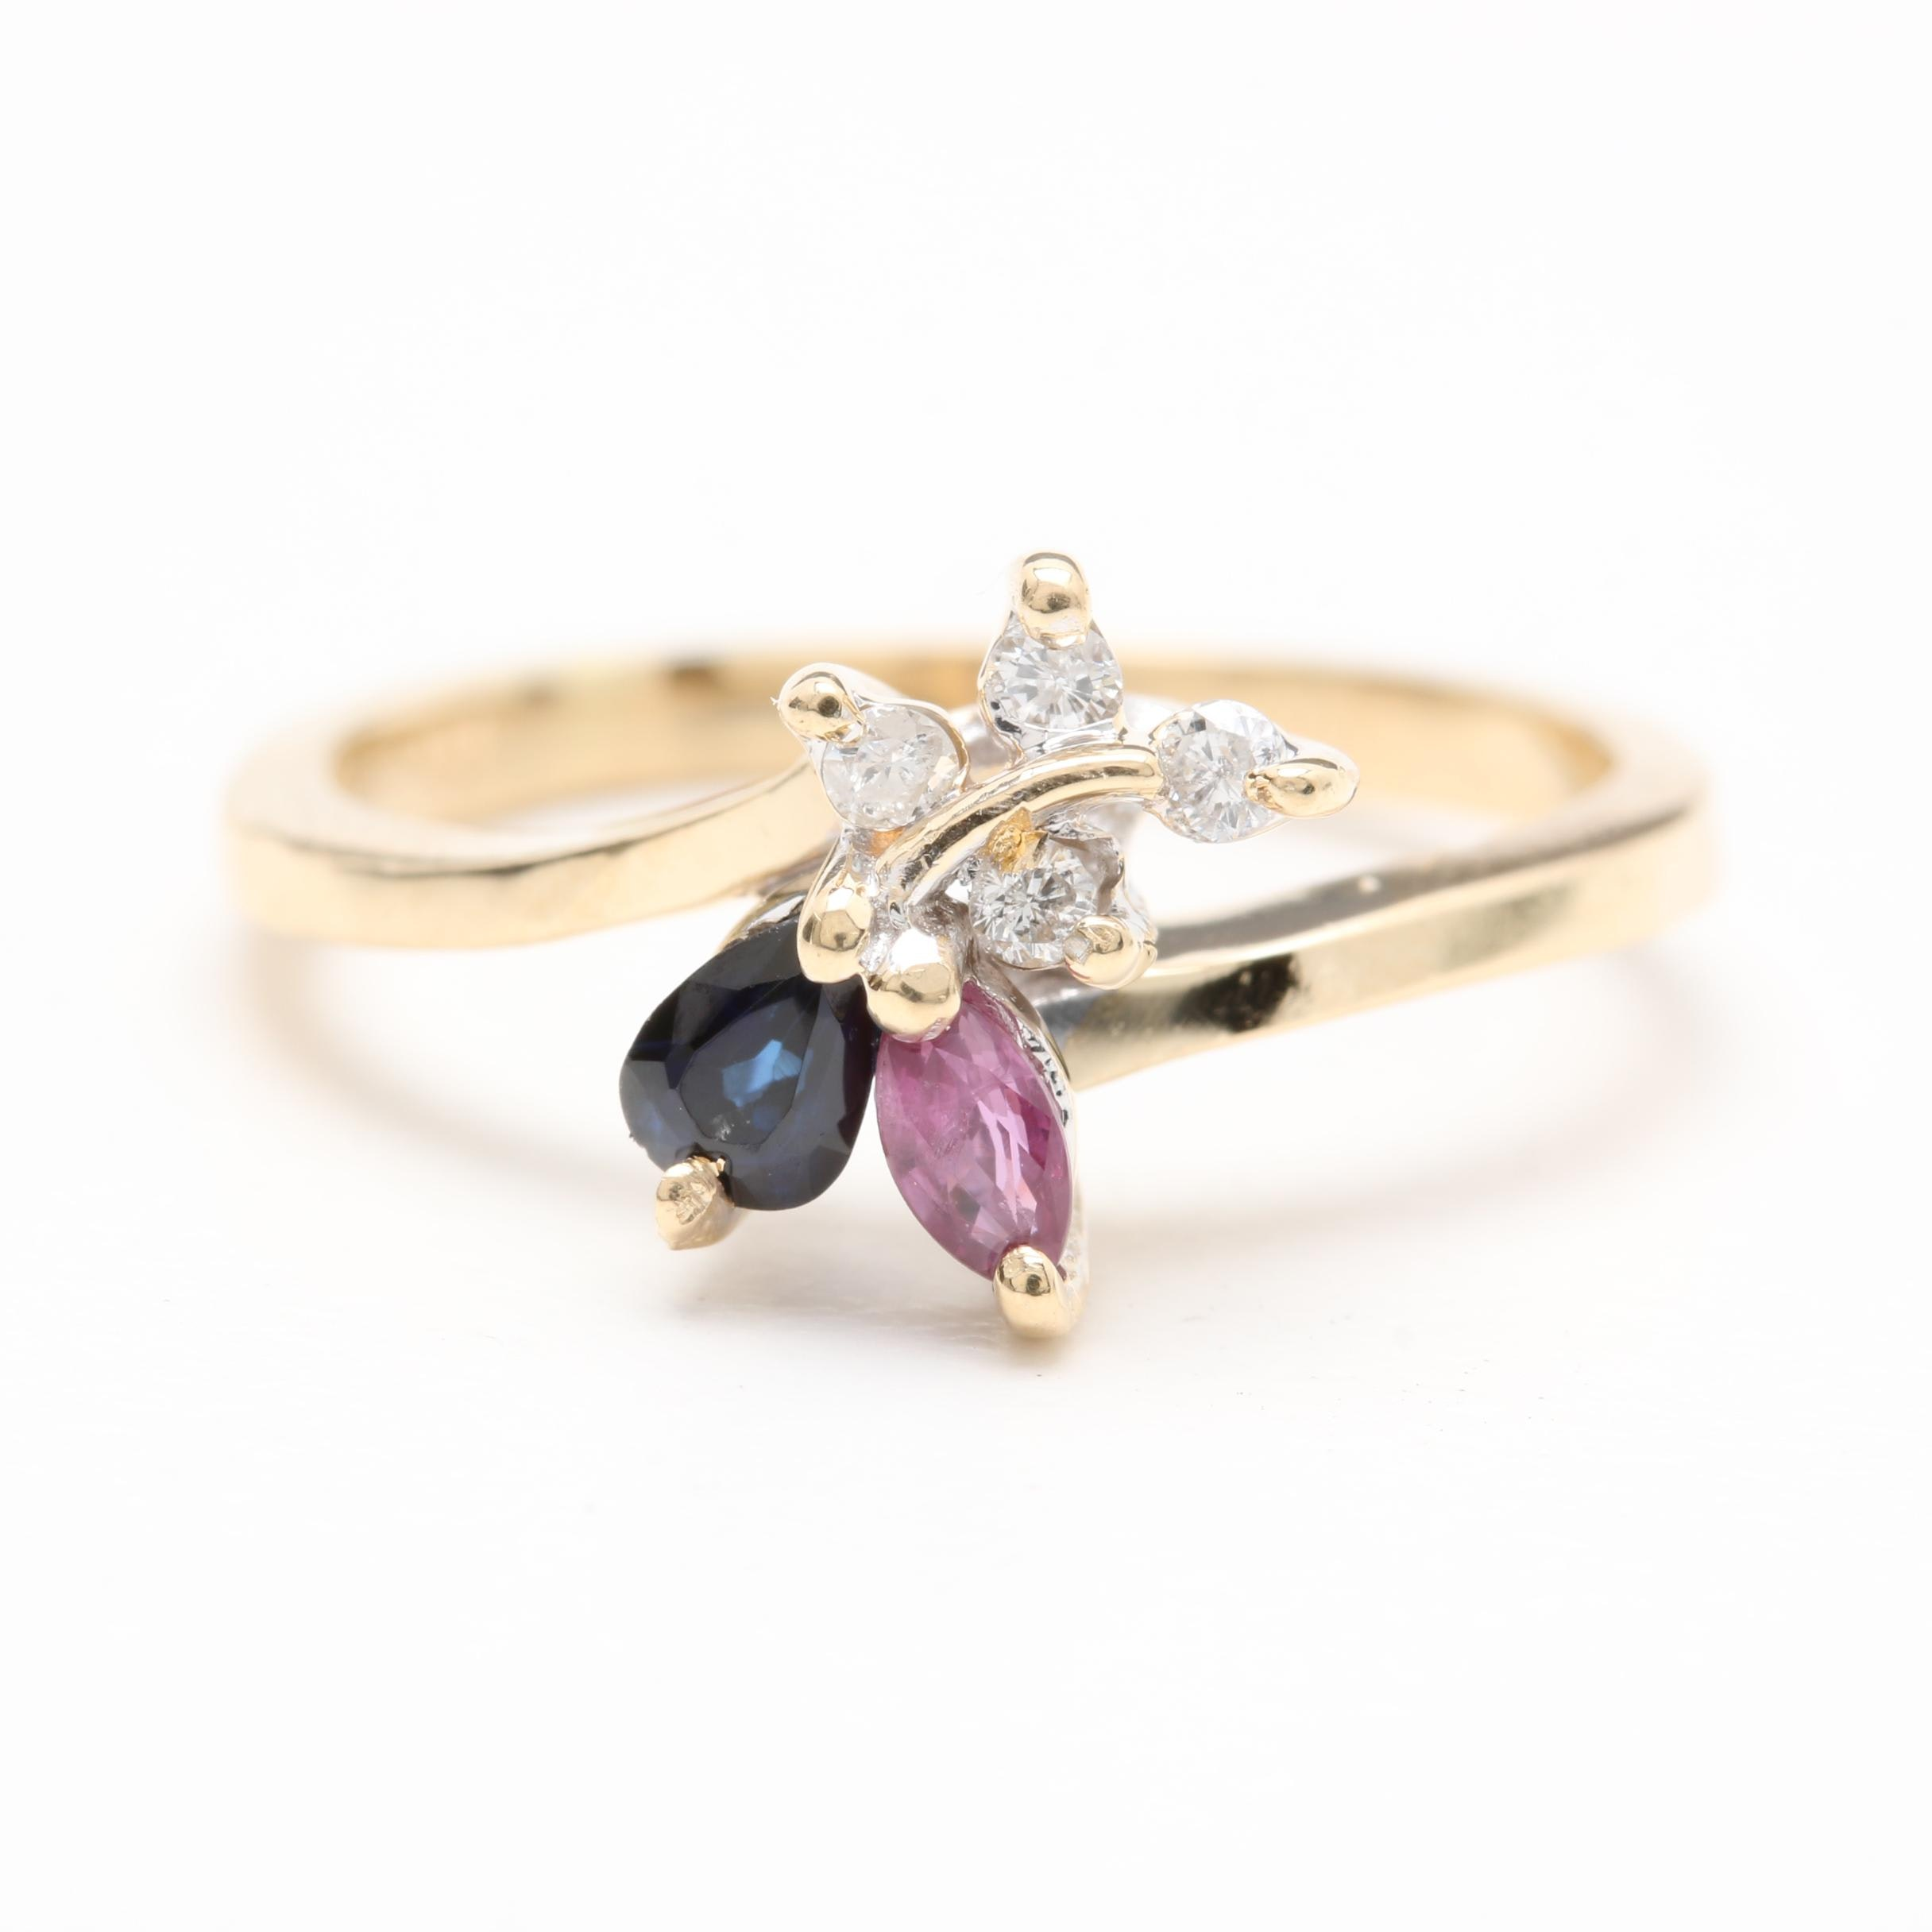 14K Yellow Gold Ruby, Sapphire and Diamond Ring